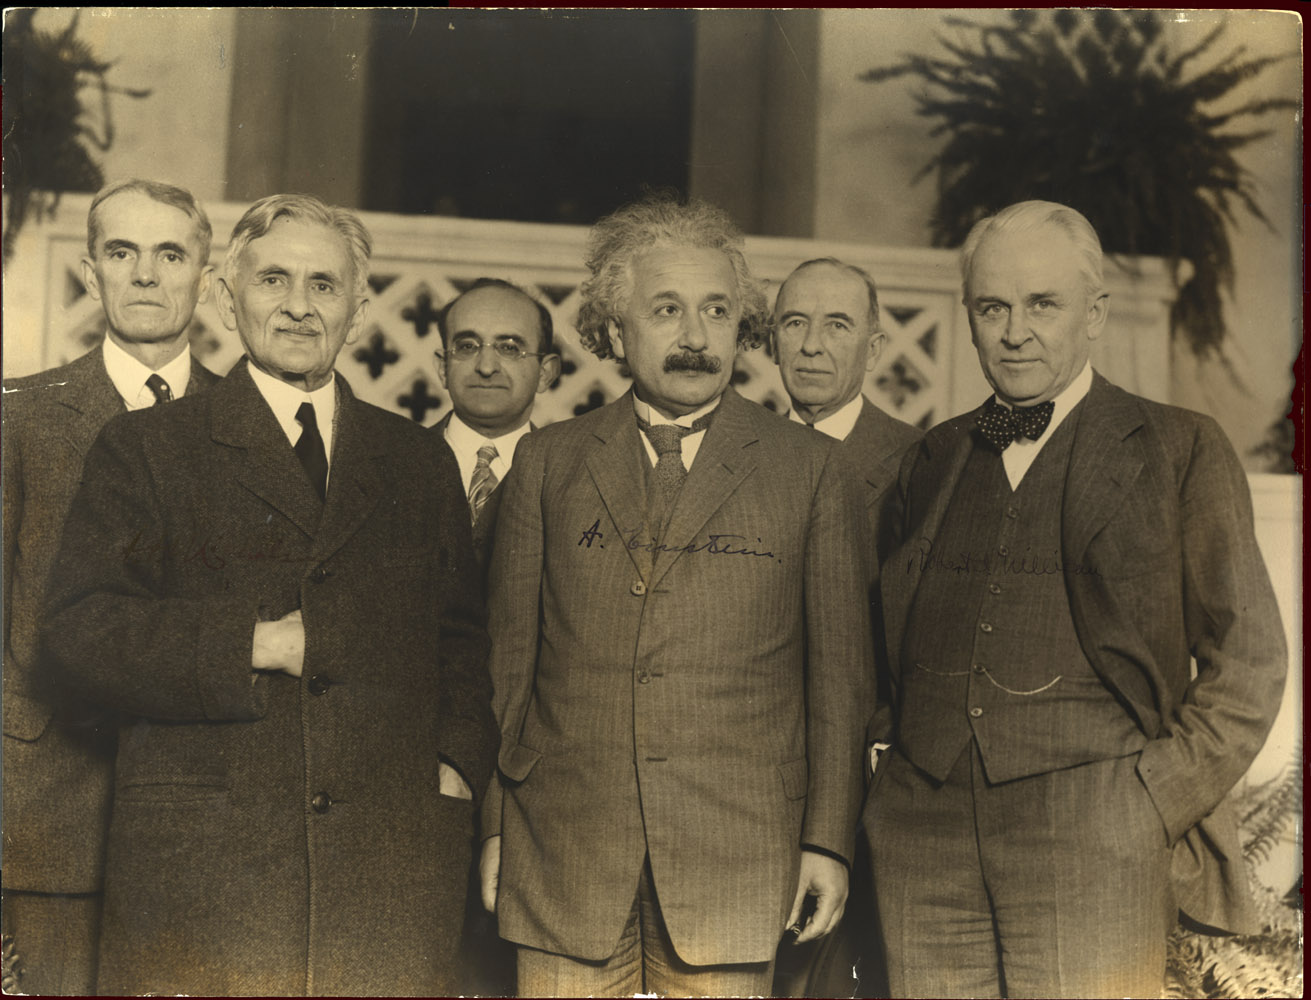 Portrait of Albert Einstein and Others,  Image number:SIL14-E1-10a